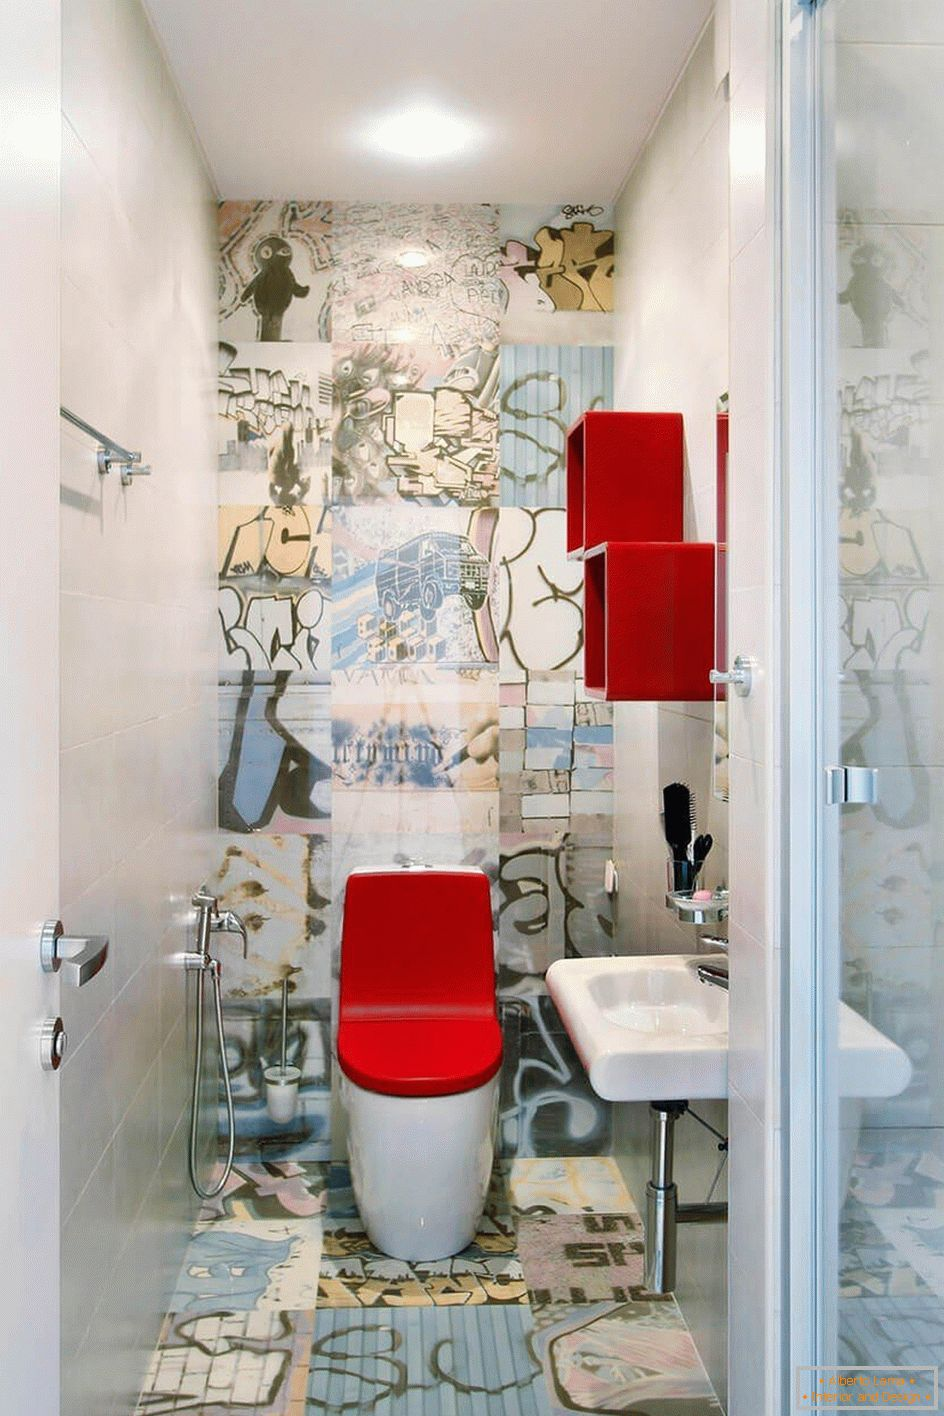 Art design des toilettes